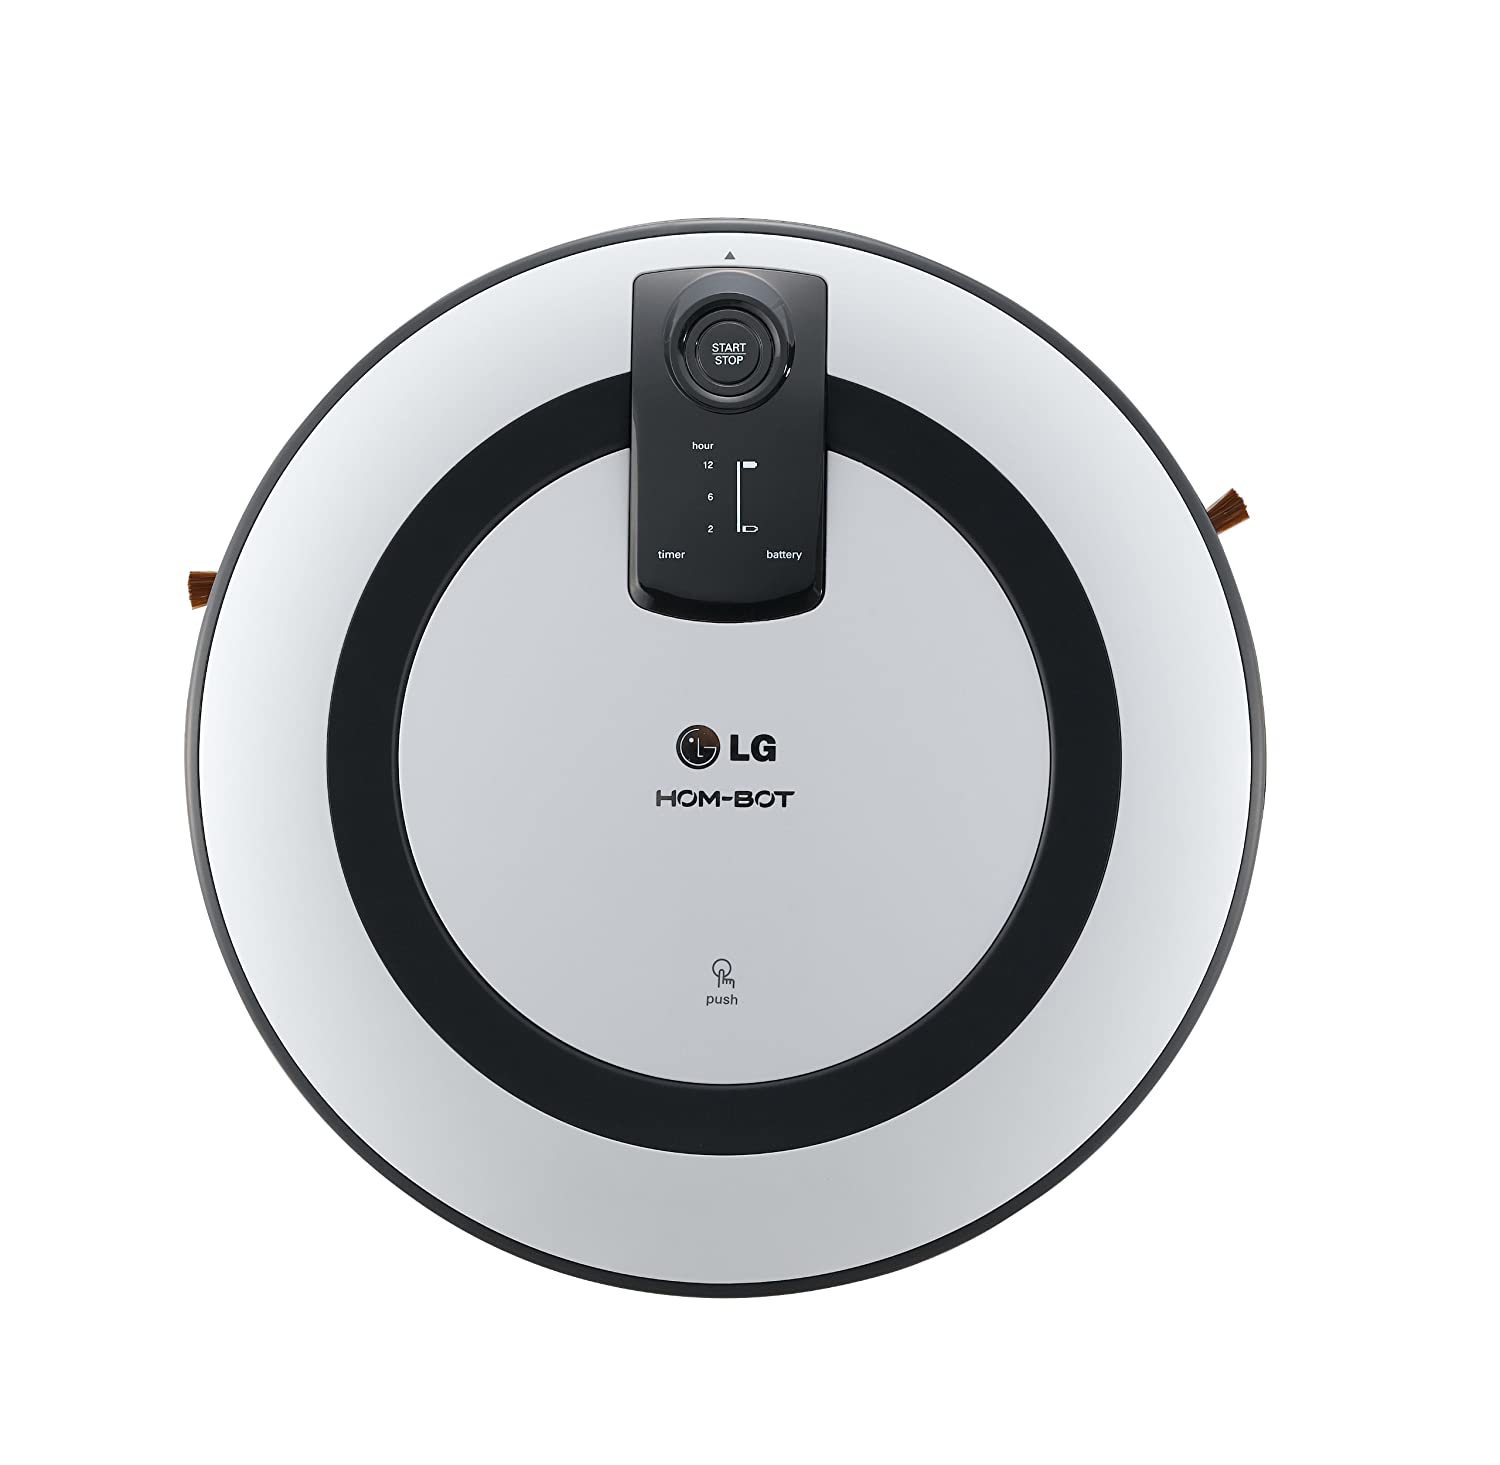 LG VR 5943L - Robot aspirador, color gris: Amazon.es: Hogar